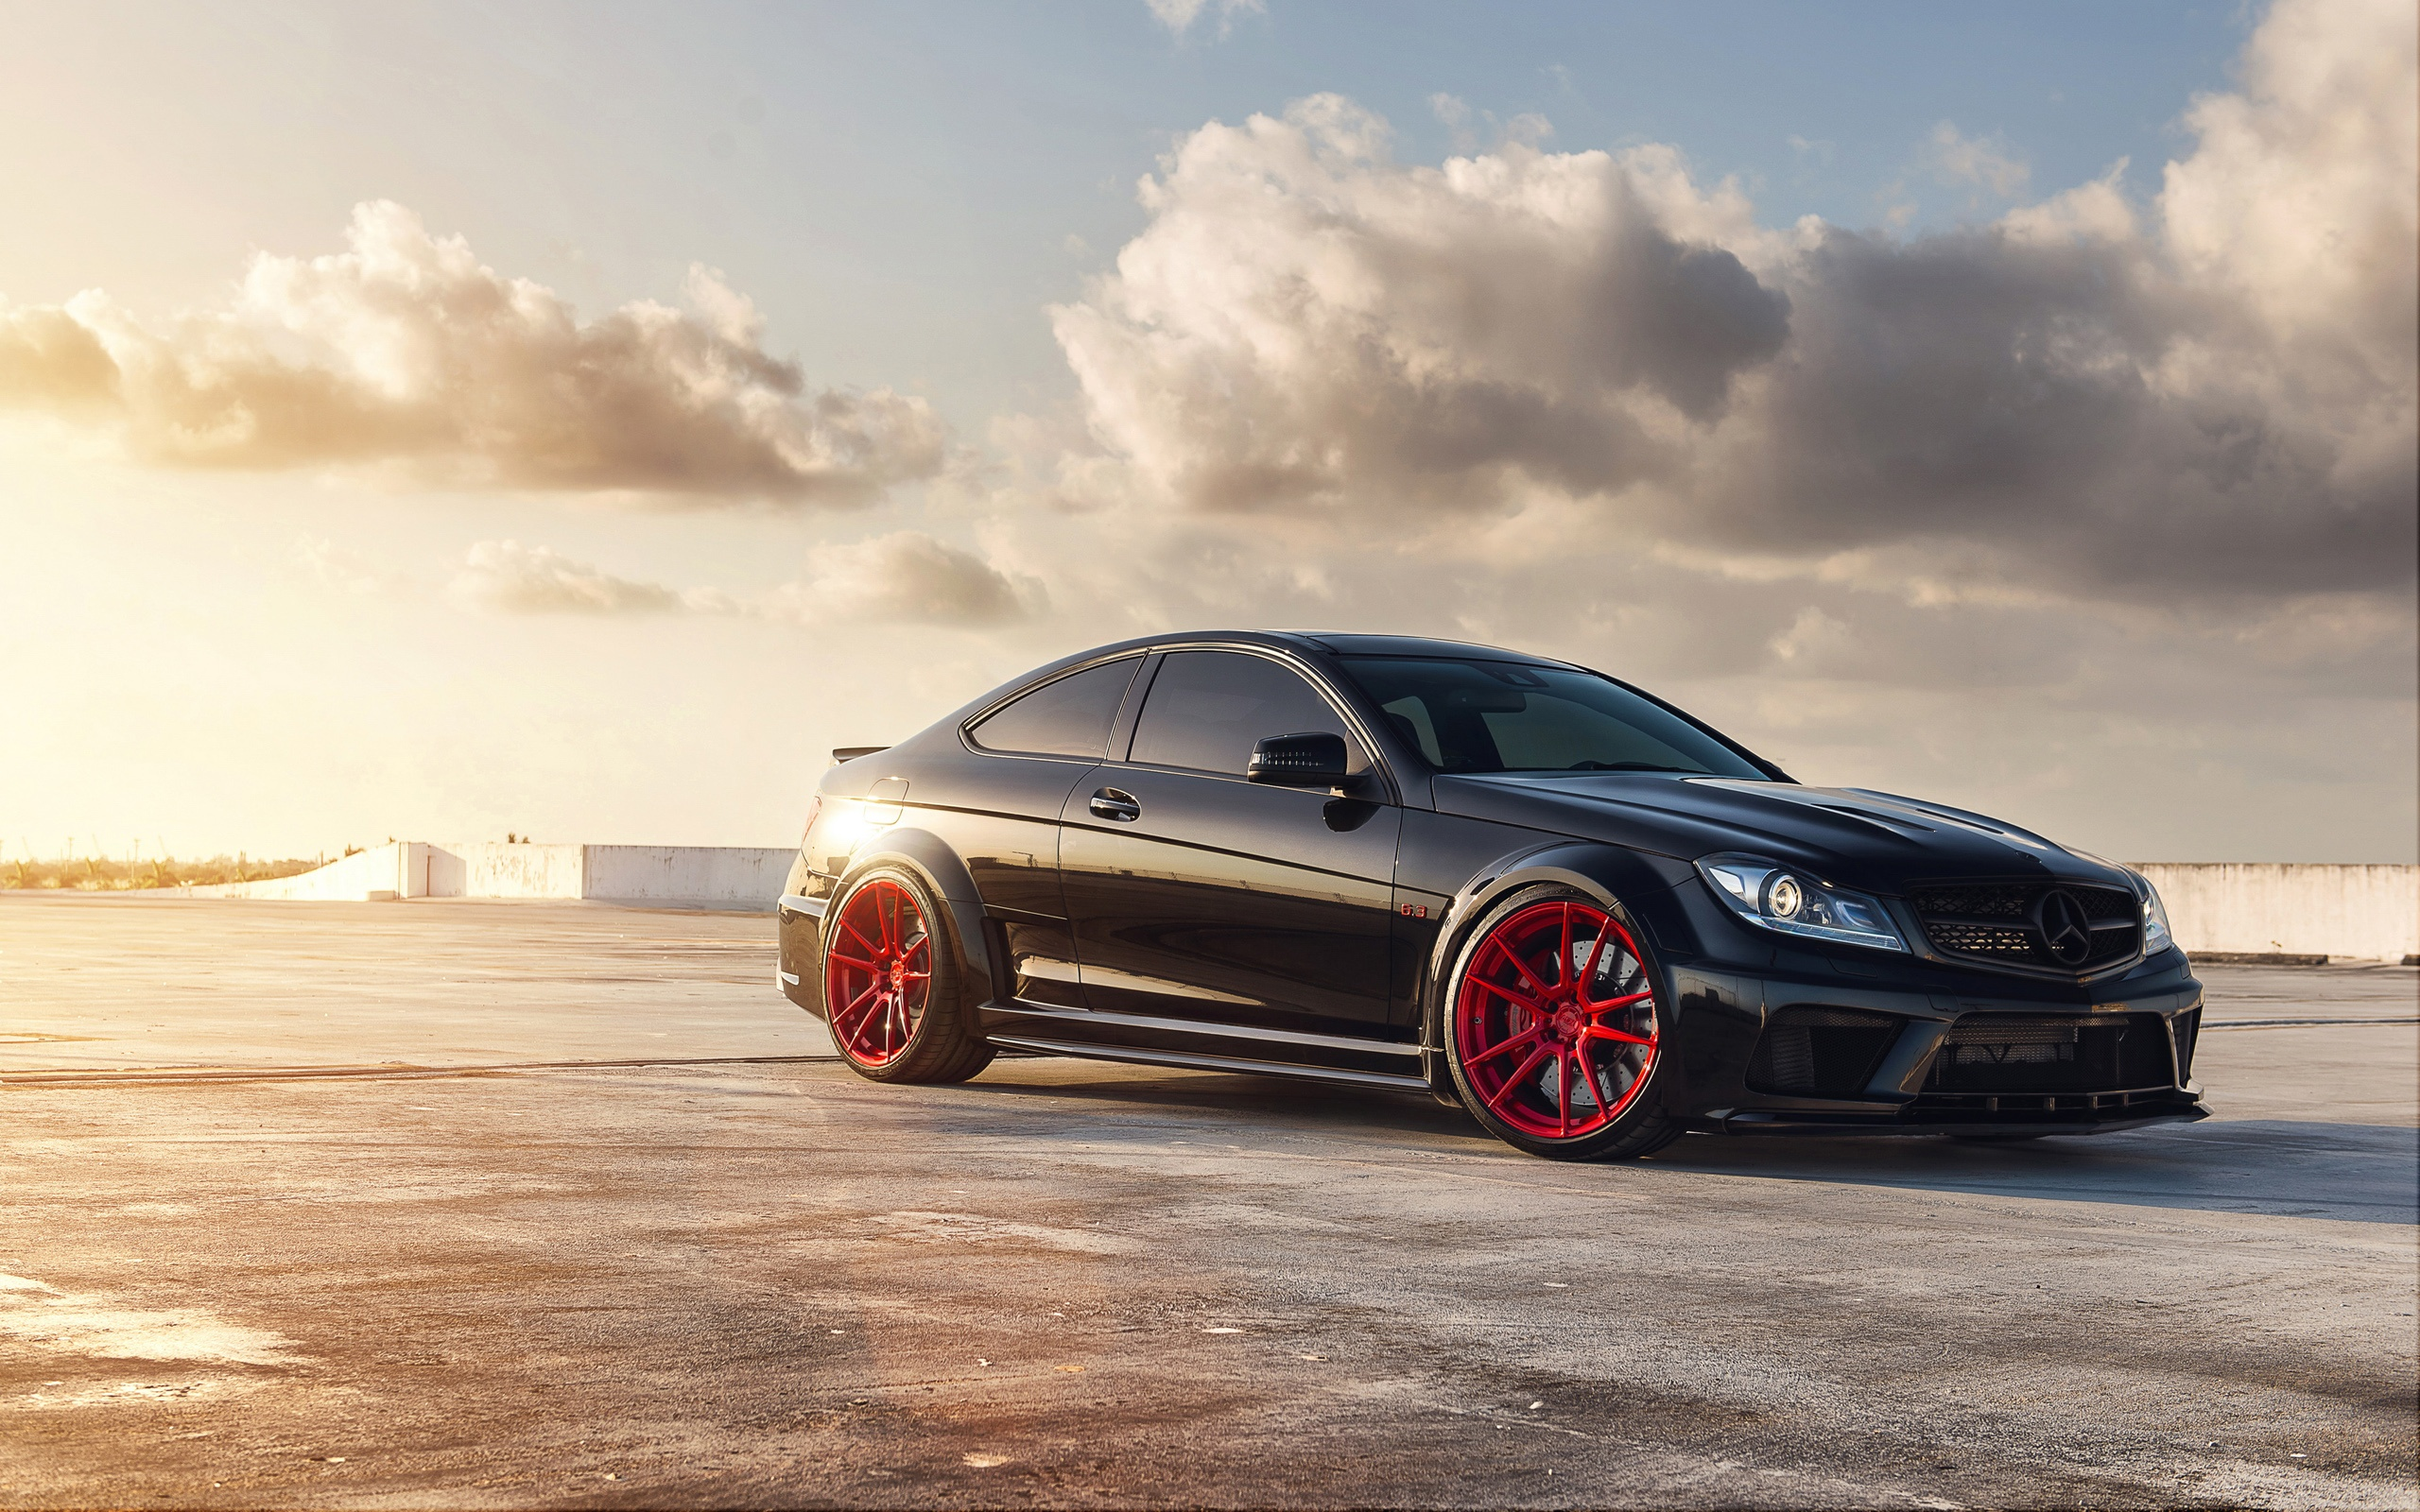 Mercedes Benz C63 AMG Wallpapers HD Wallpapers 2560x1600